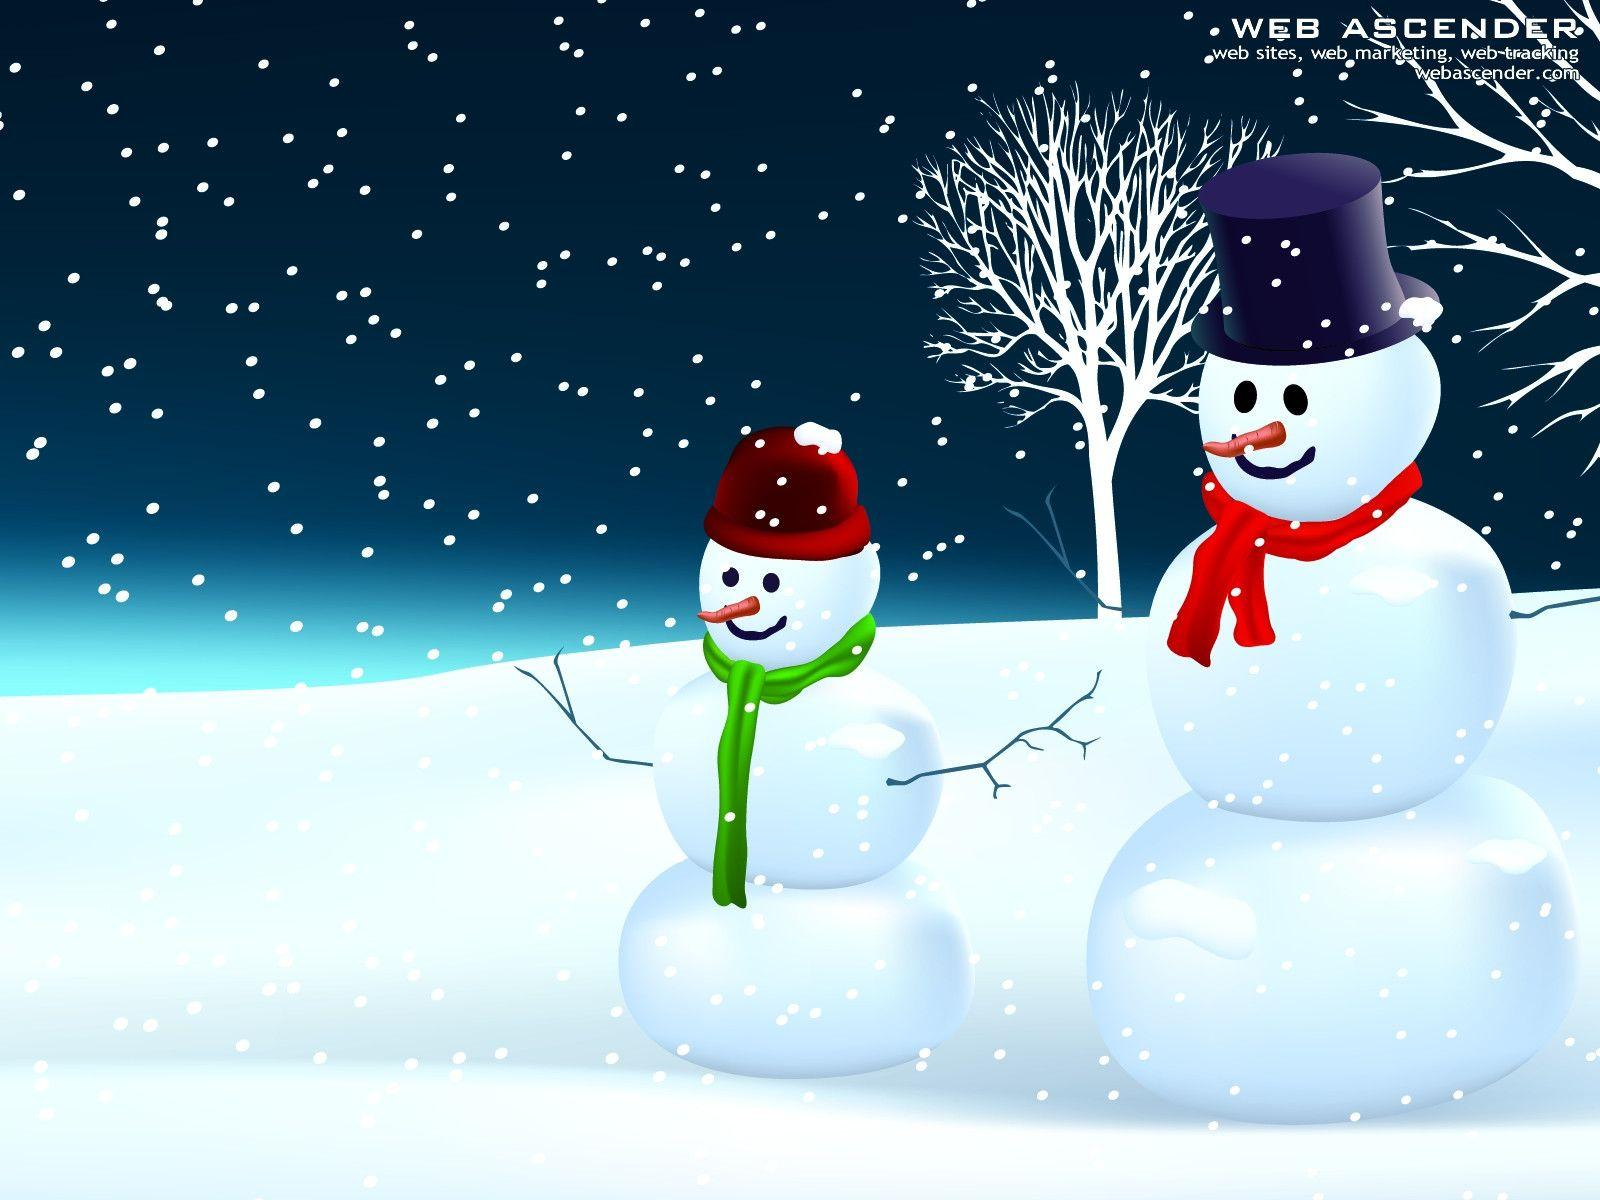 cute country snowman wallpaper - photo #5